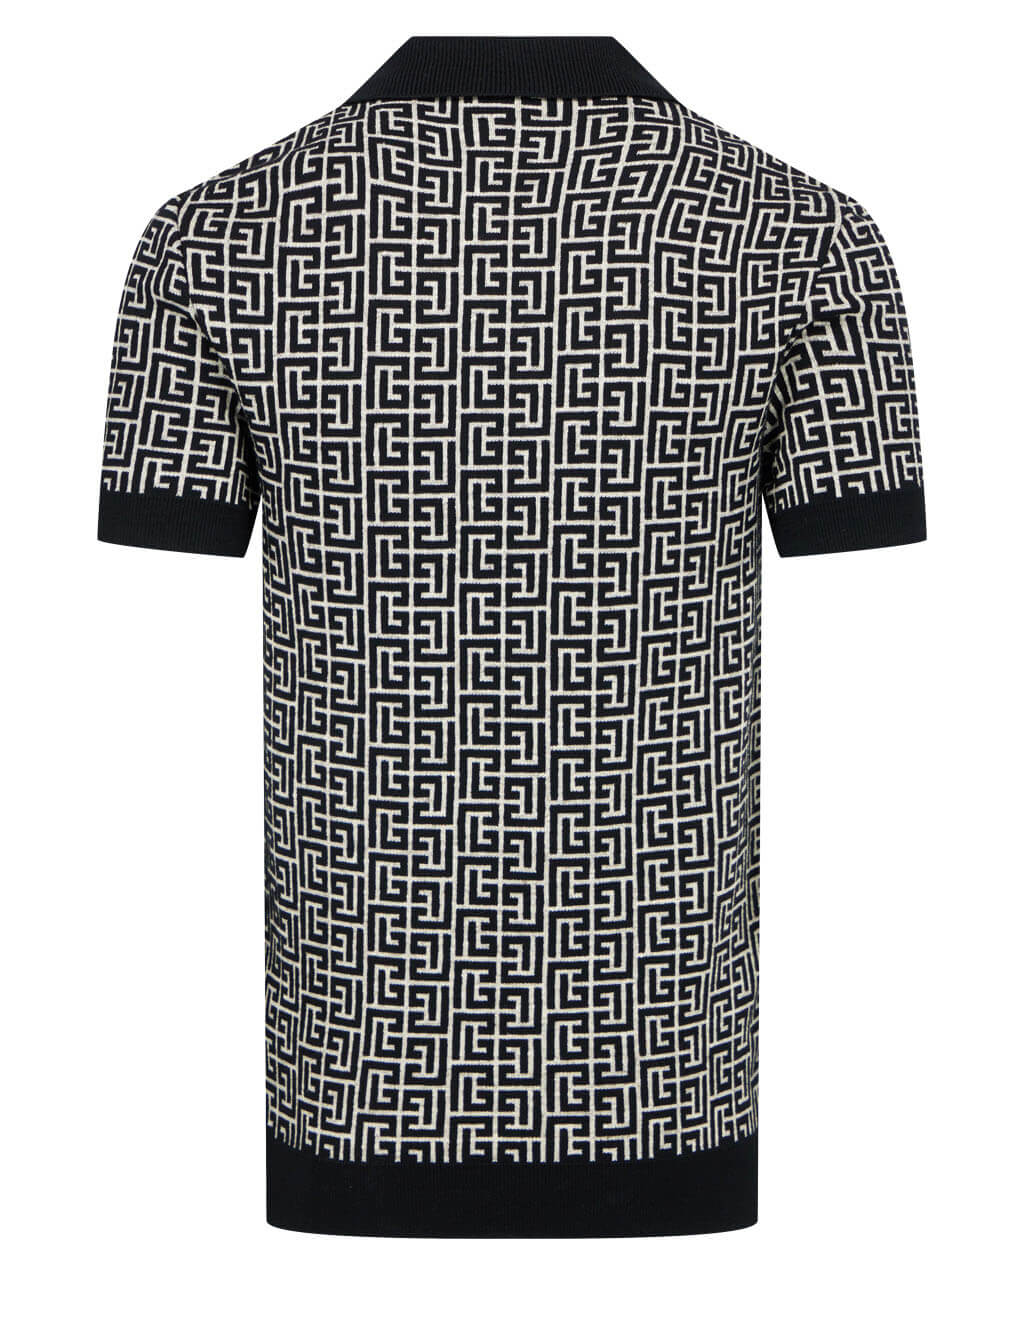 Balmain Men's Black Bicolour Monogram Polo Shirt VH0GB020K020GFE